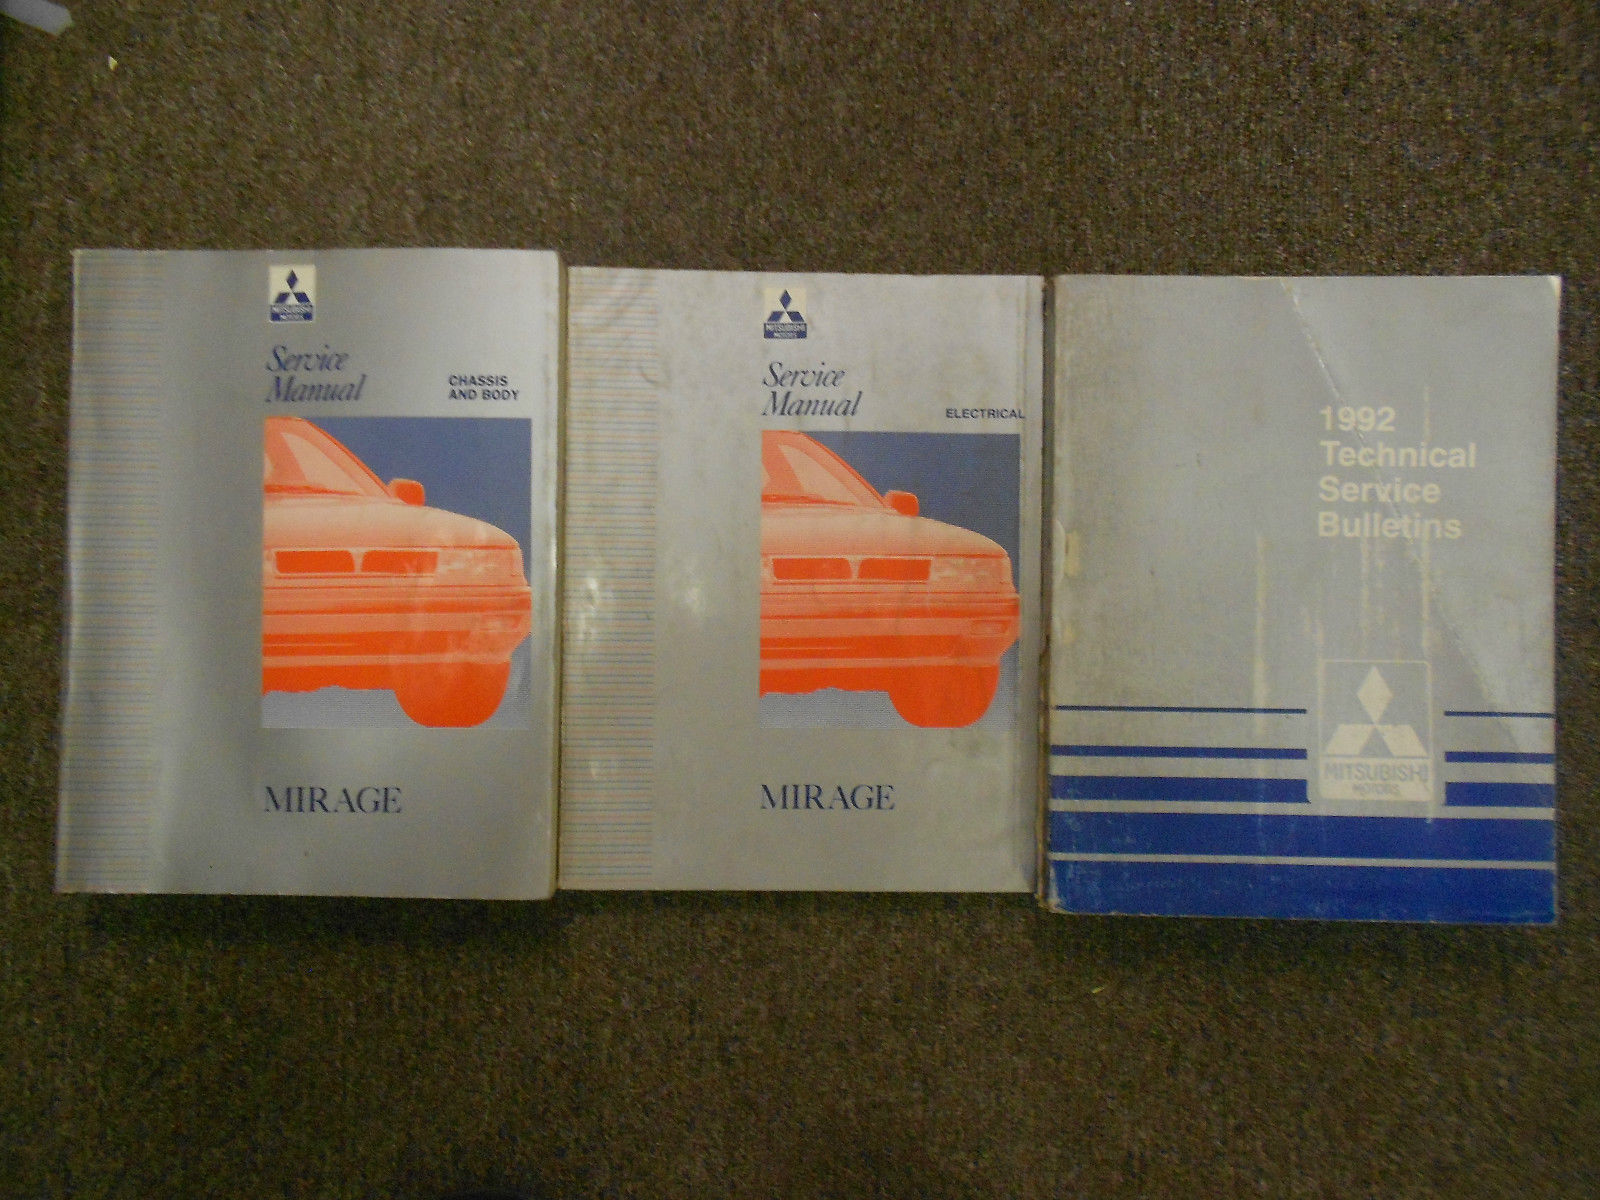 1992 MITSUBISHI Mirage Technical Bulletins Service Repair Manual SET  FACTORY OEM